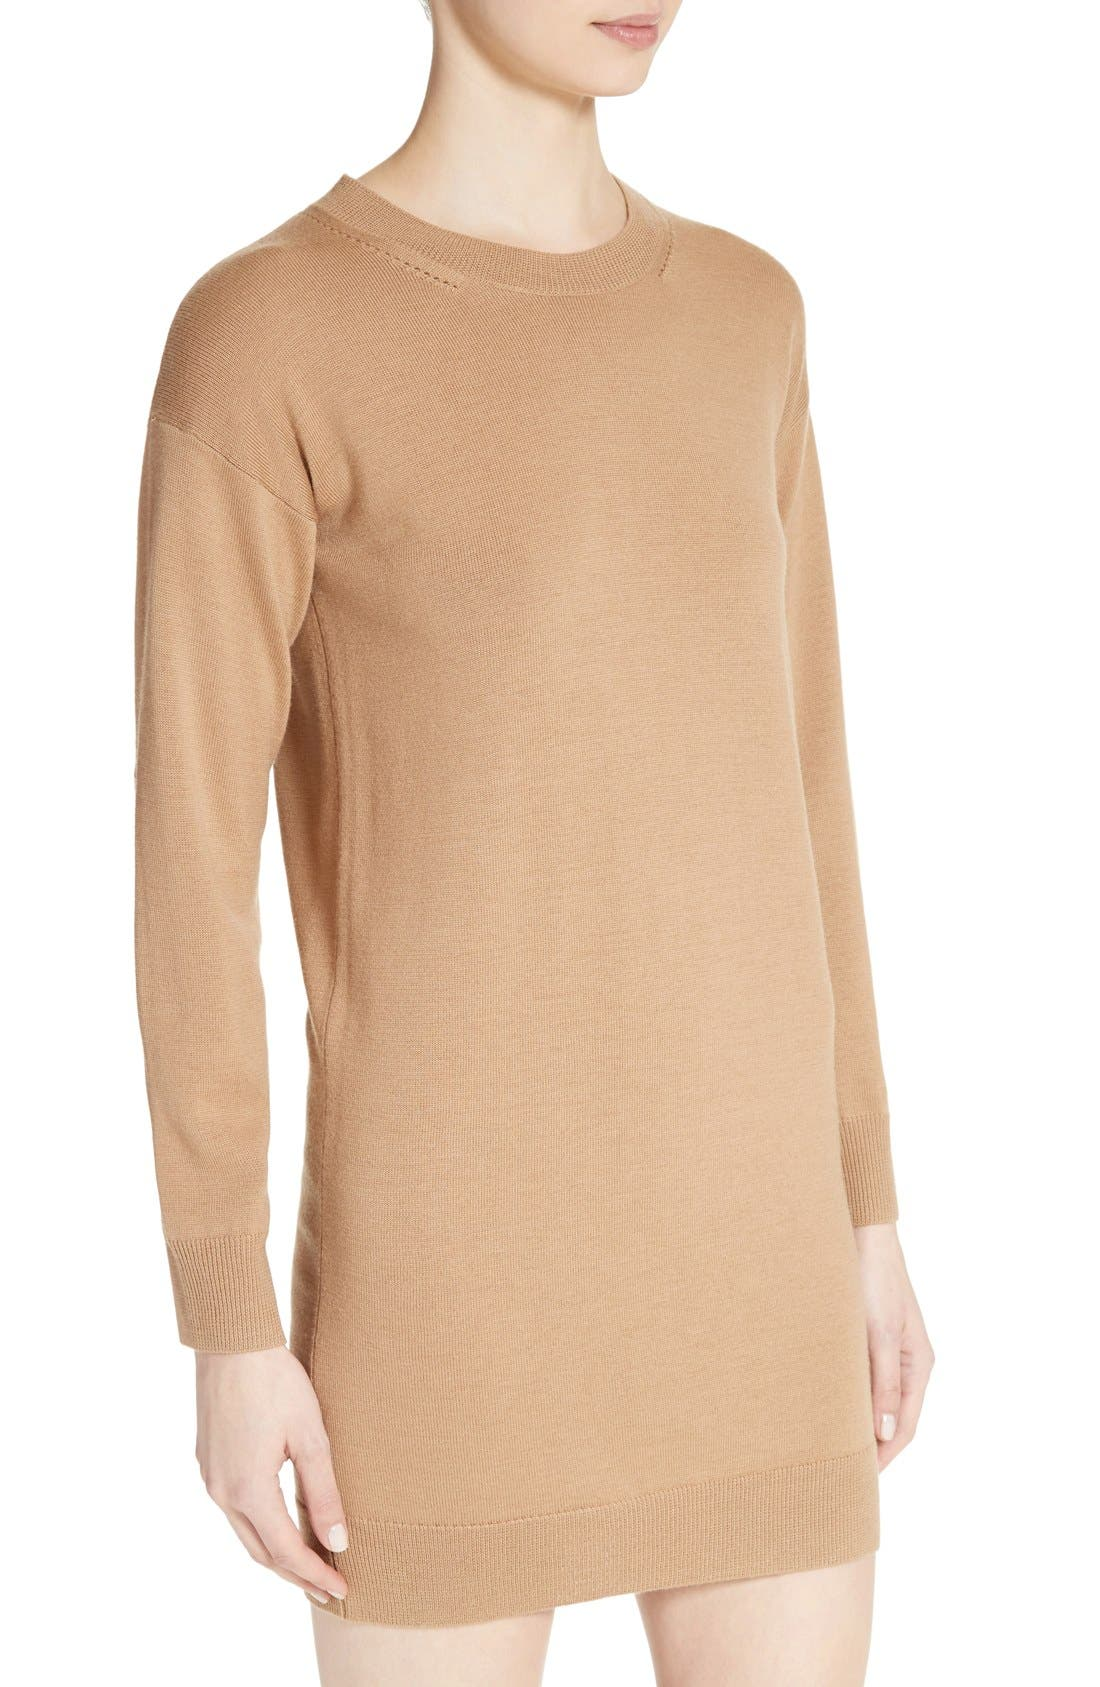 Alewater Elbow Patch Merino Wool Dress,                             Alternate thumbnail 7, color,                             Camel